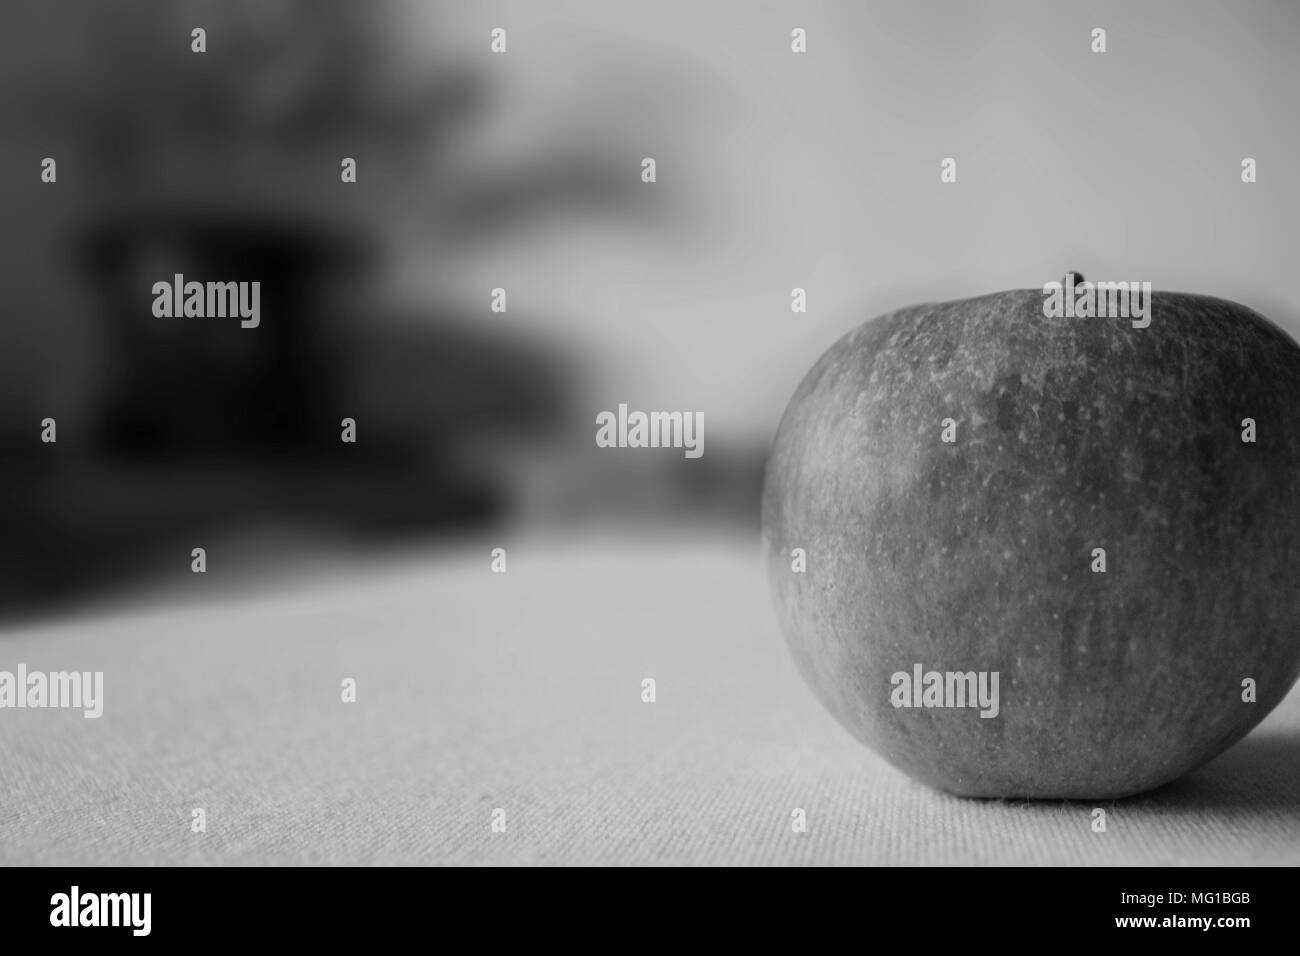 Close up of a red apple with blurred background in black and white. - Stock Image